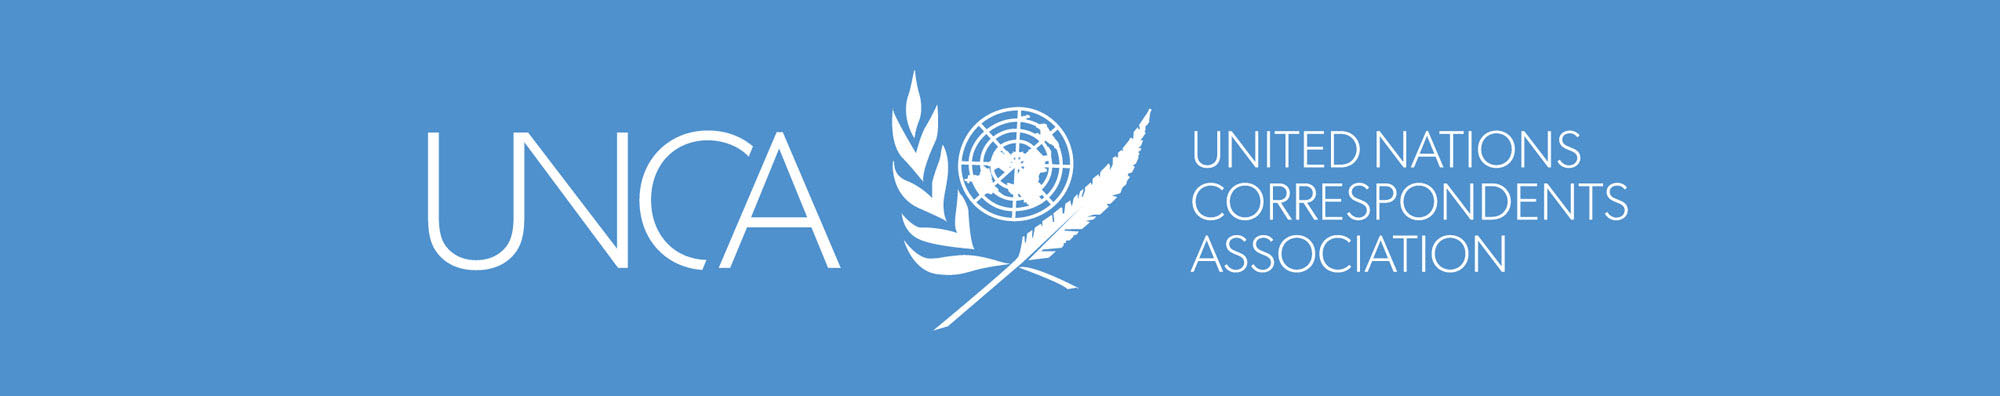 The United Nations Correspondents Association